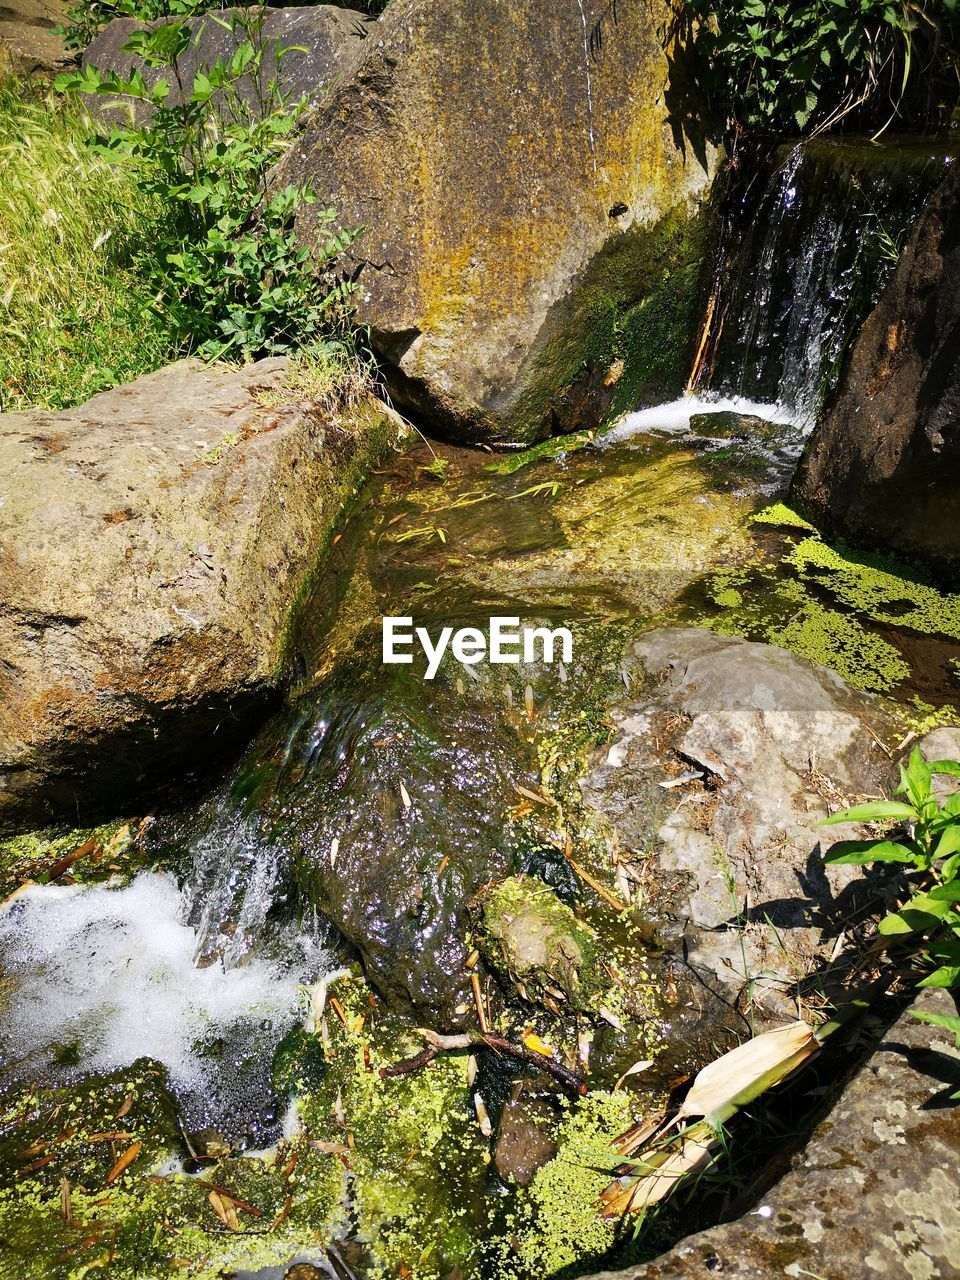 water, rock, rock - object, solid, nature, flowing water, beauty in nature, scenics - nature, moss, no people, motion, flowing, day, waterfall, plant, forest, long exposure, non-urban scene, downloading, outdoors, stream - flowing water, falling water, shallow